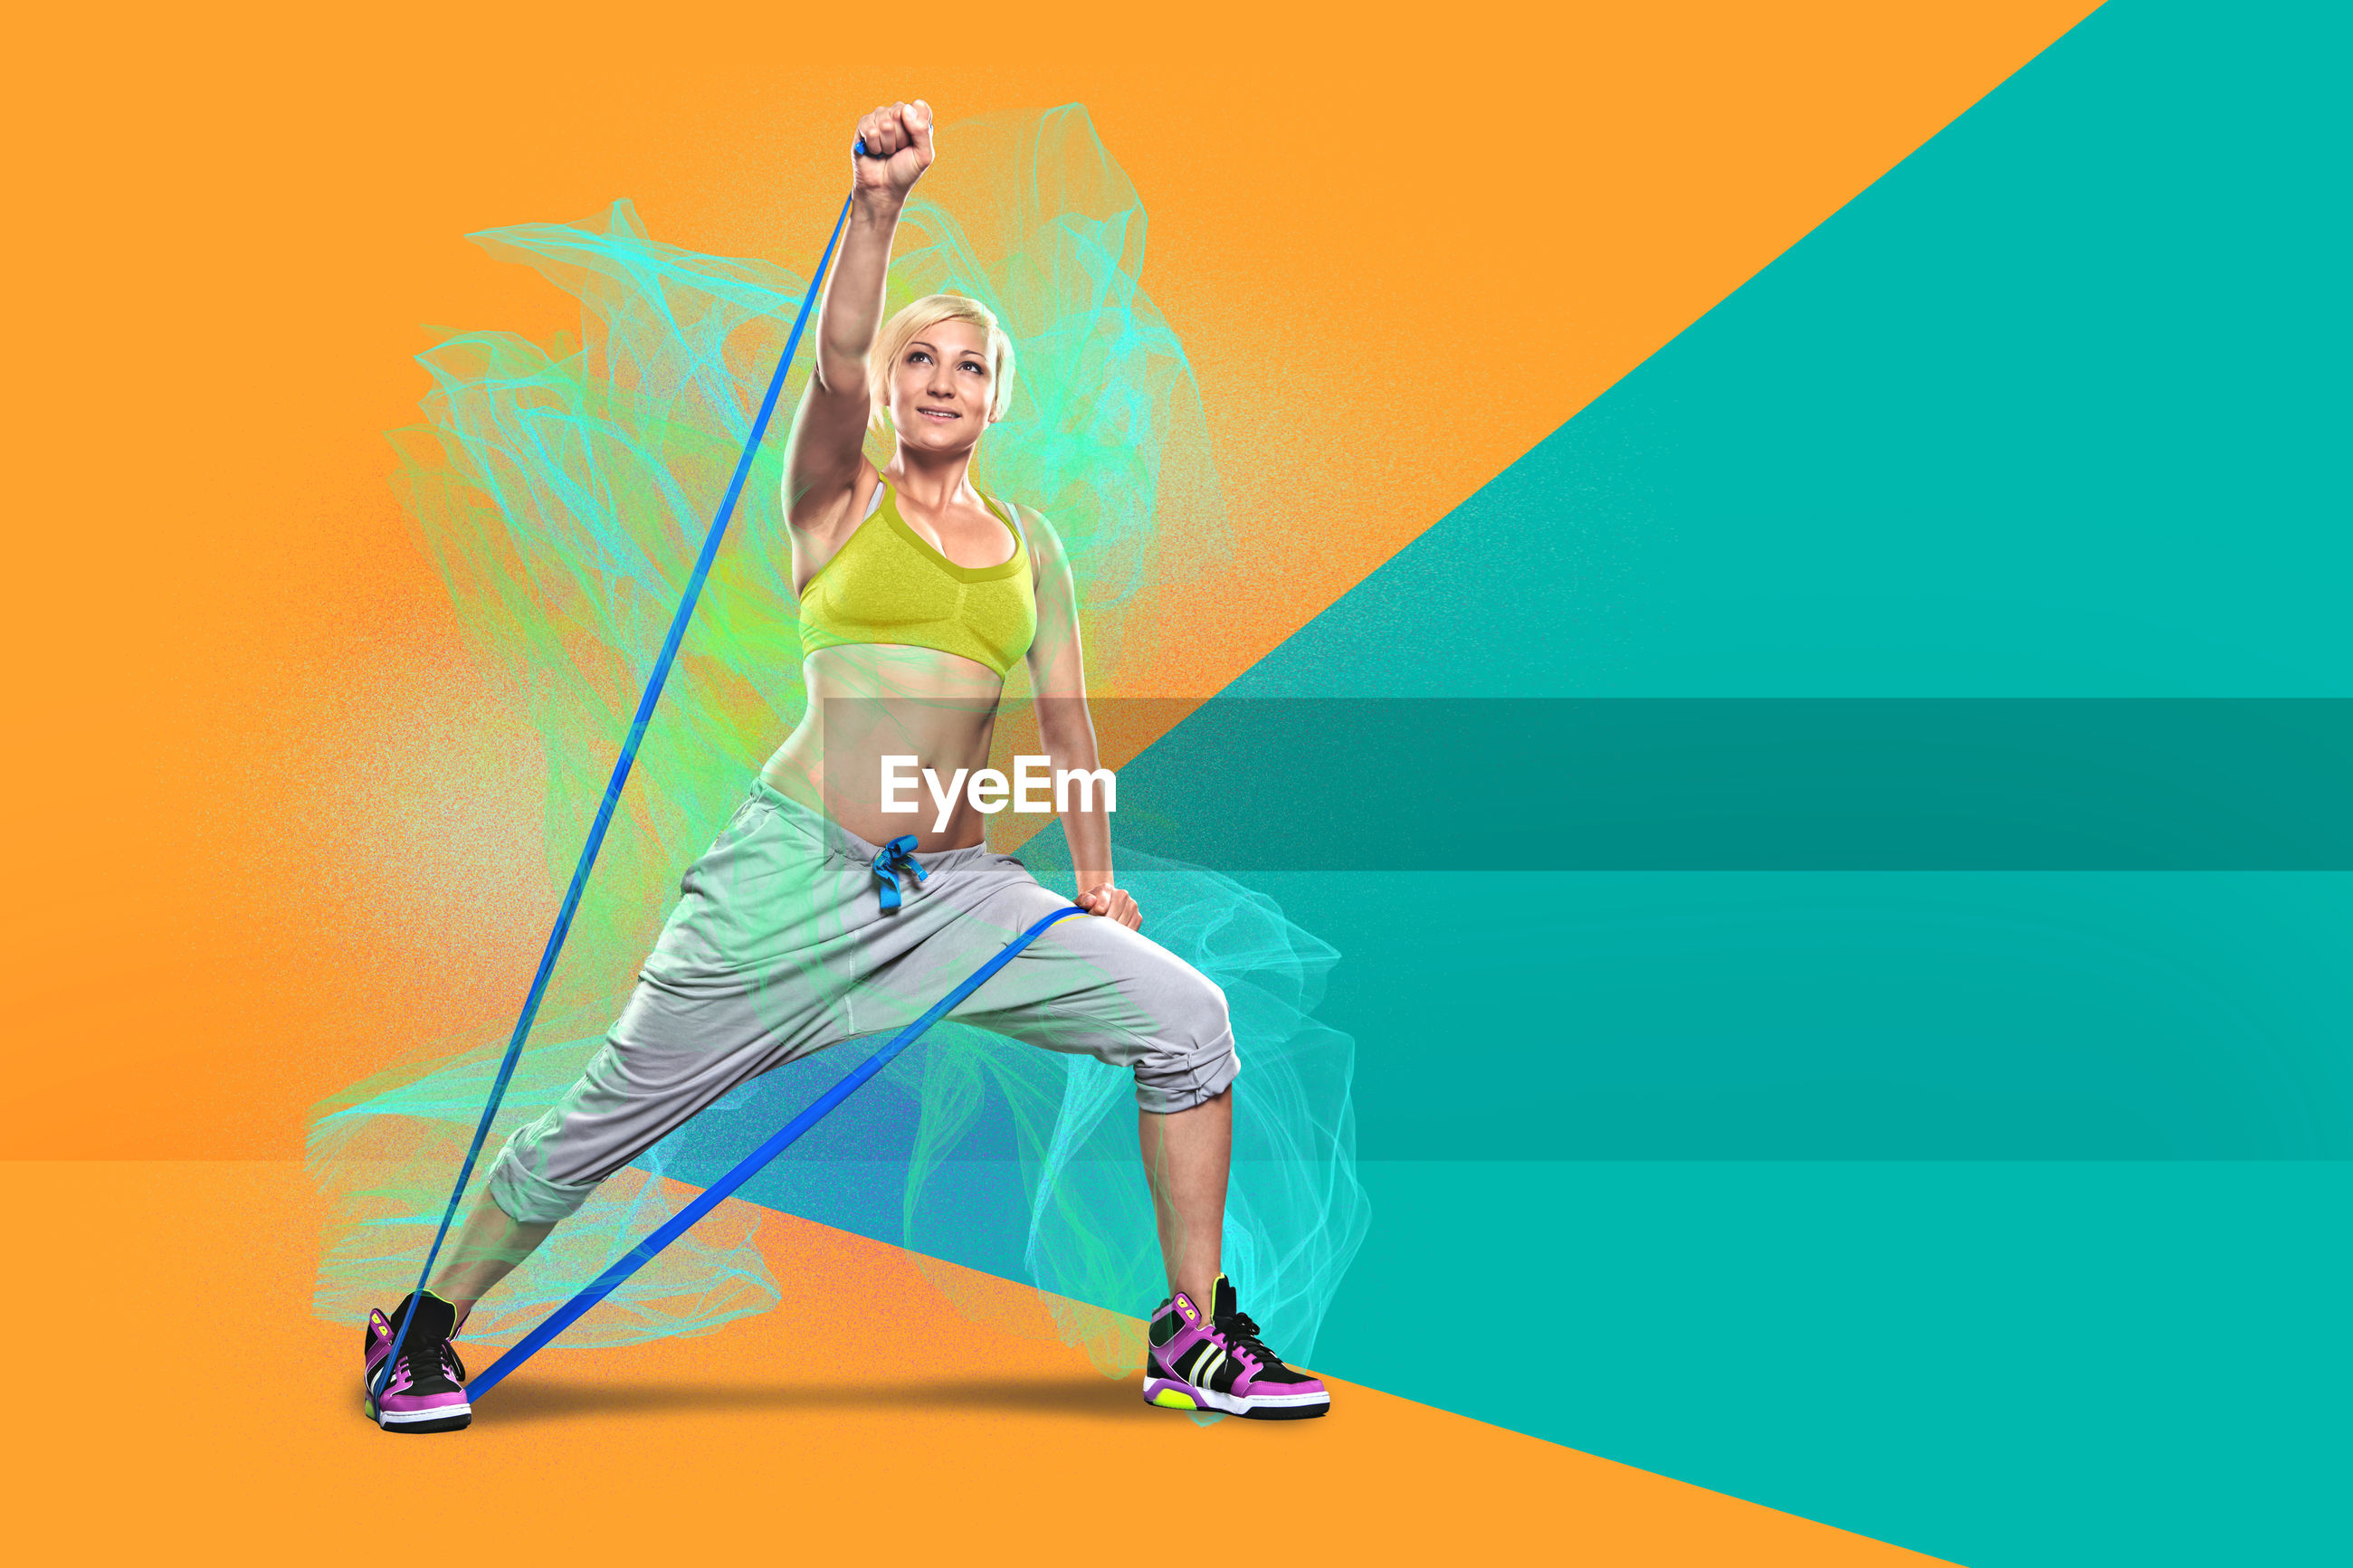 Digital composite image woman dancing against colored background